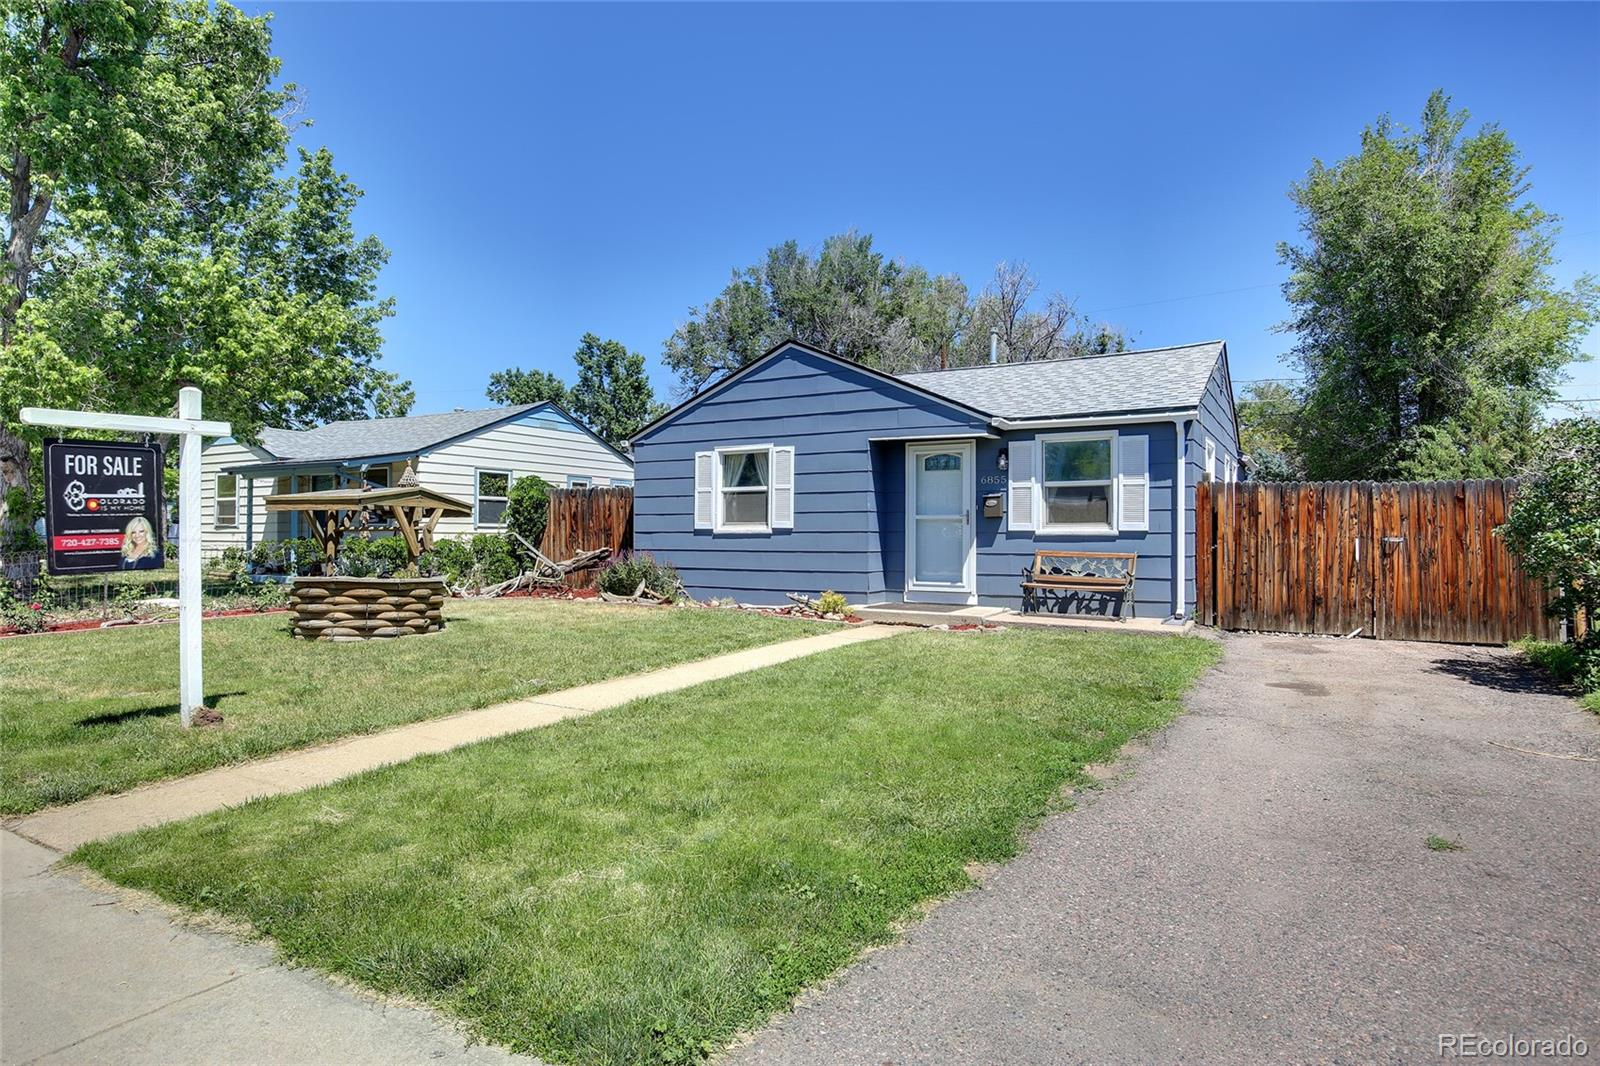 MLS# 4917886 - 2 - 6855 W 55th Place, Arvada, CO 80002